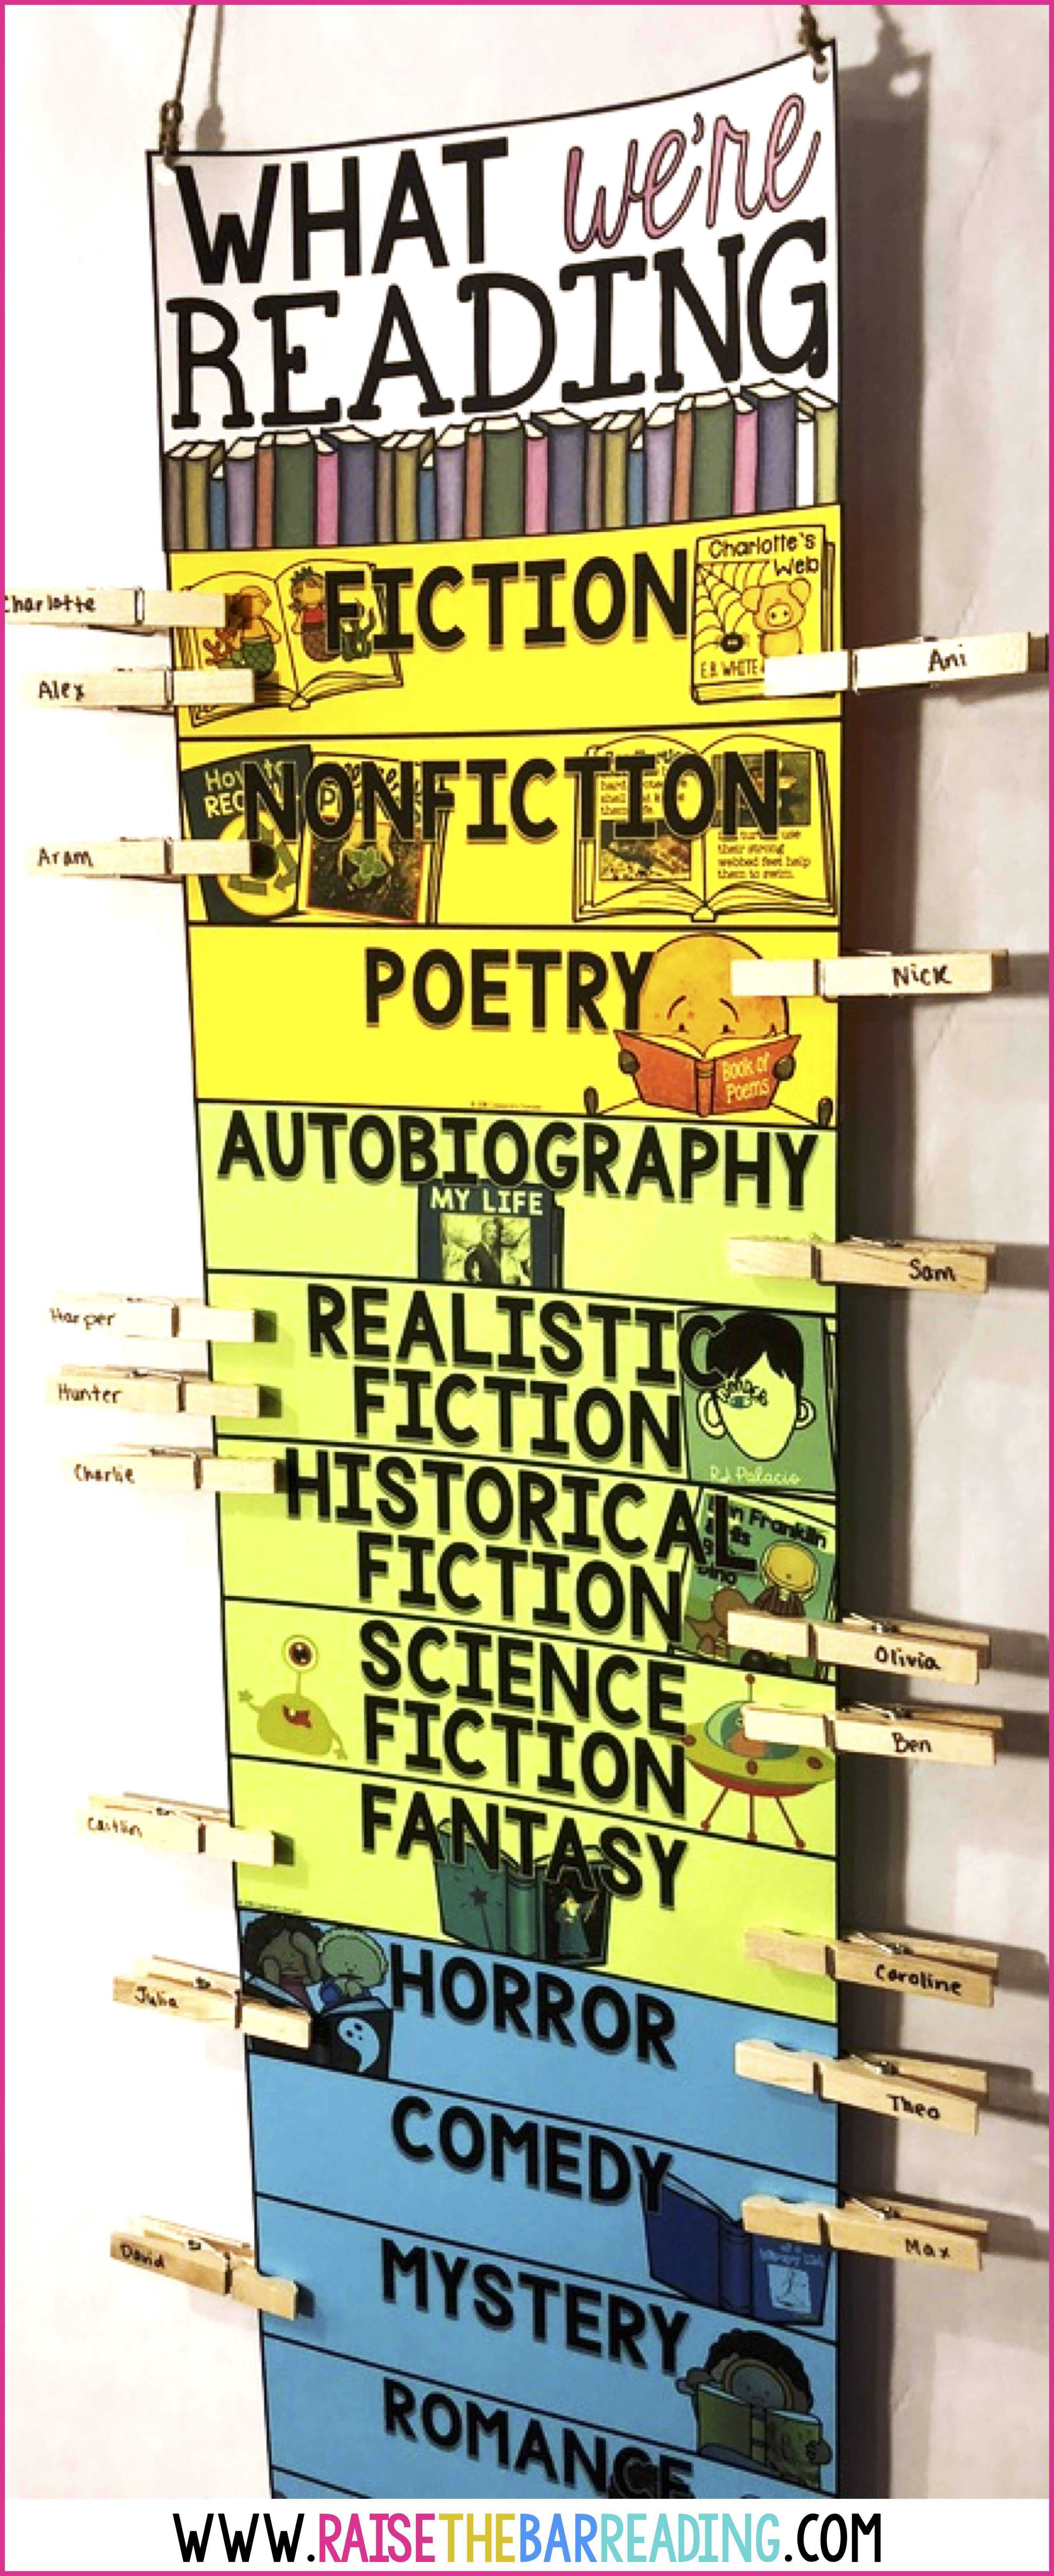 Teaching Reading Genres: From Setting up a Classroom Library to Independent Genre Activities - Raise the Bar Reading